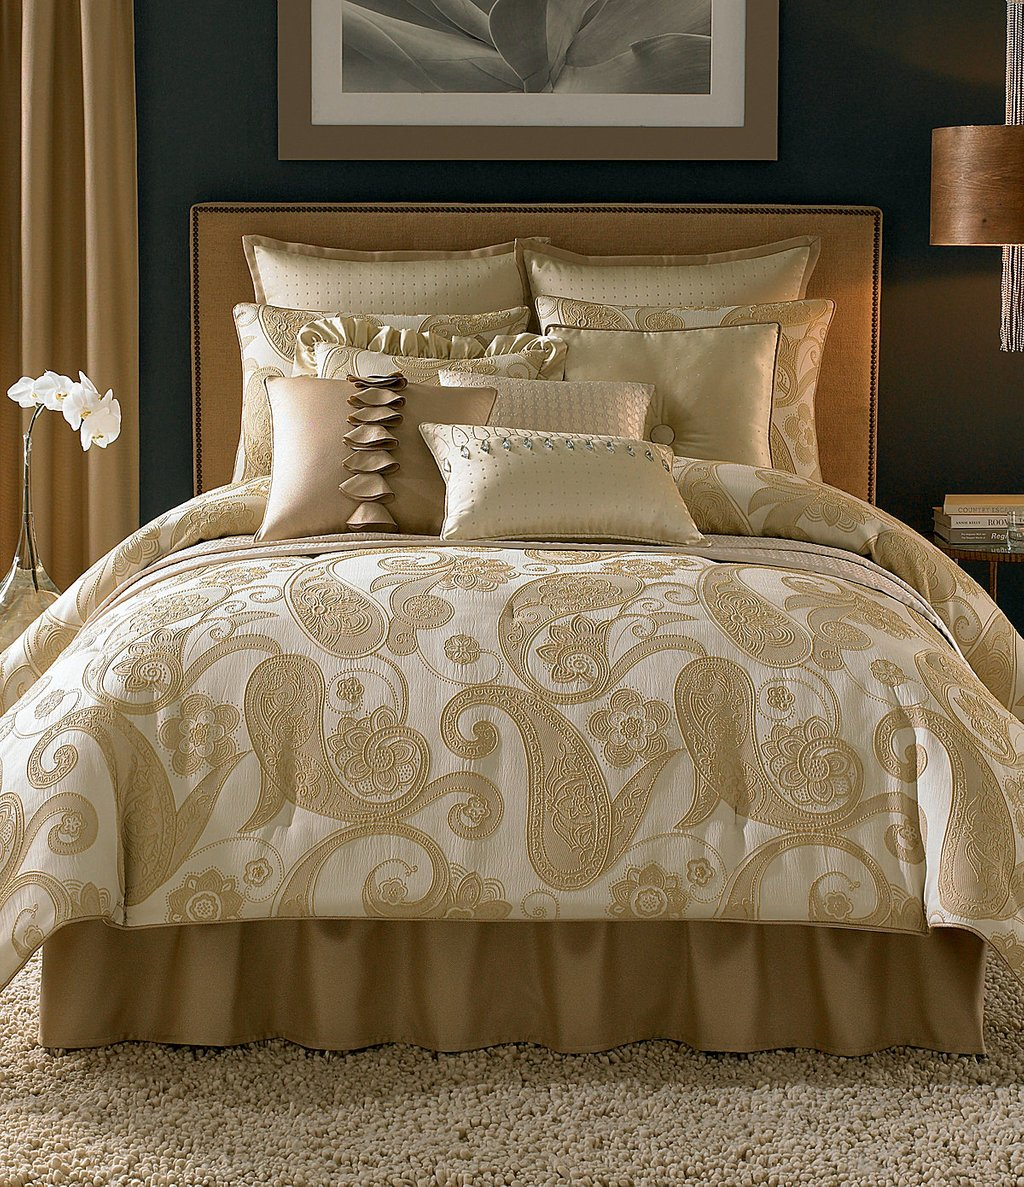 Image of: Modern Furniture 2018 Candice Olson Bedding Collection The Advantages of Candice Olson Bedding